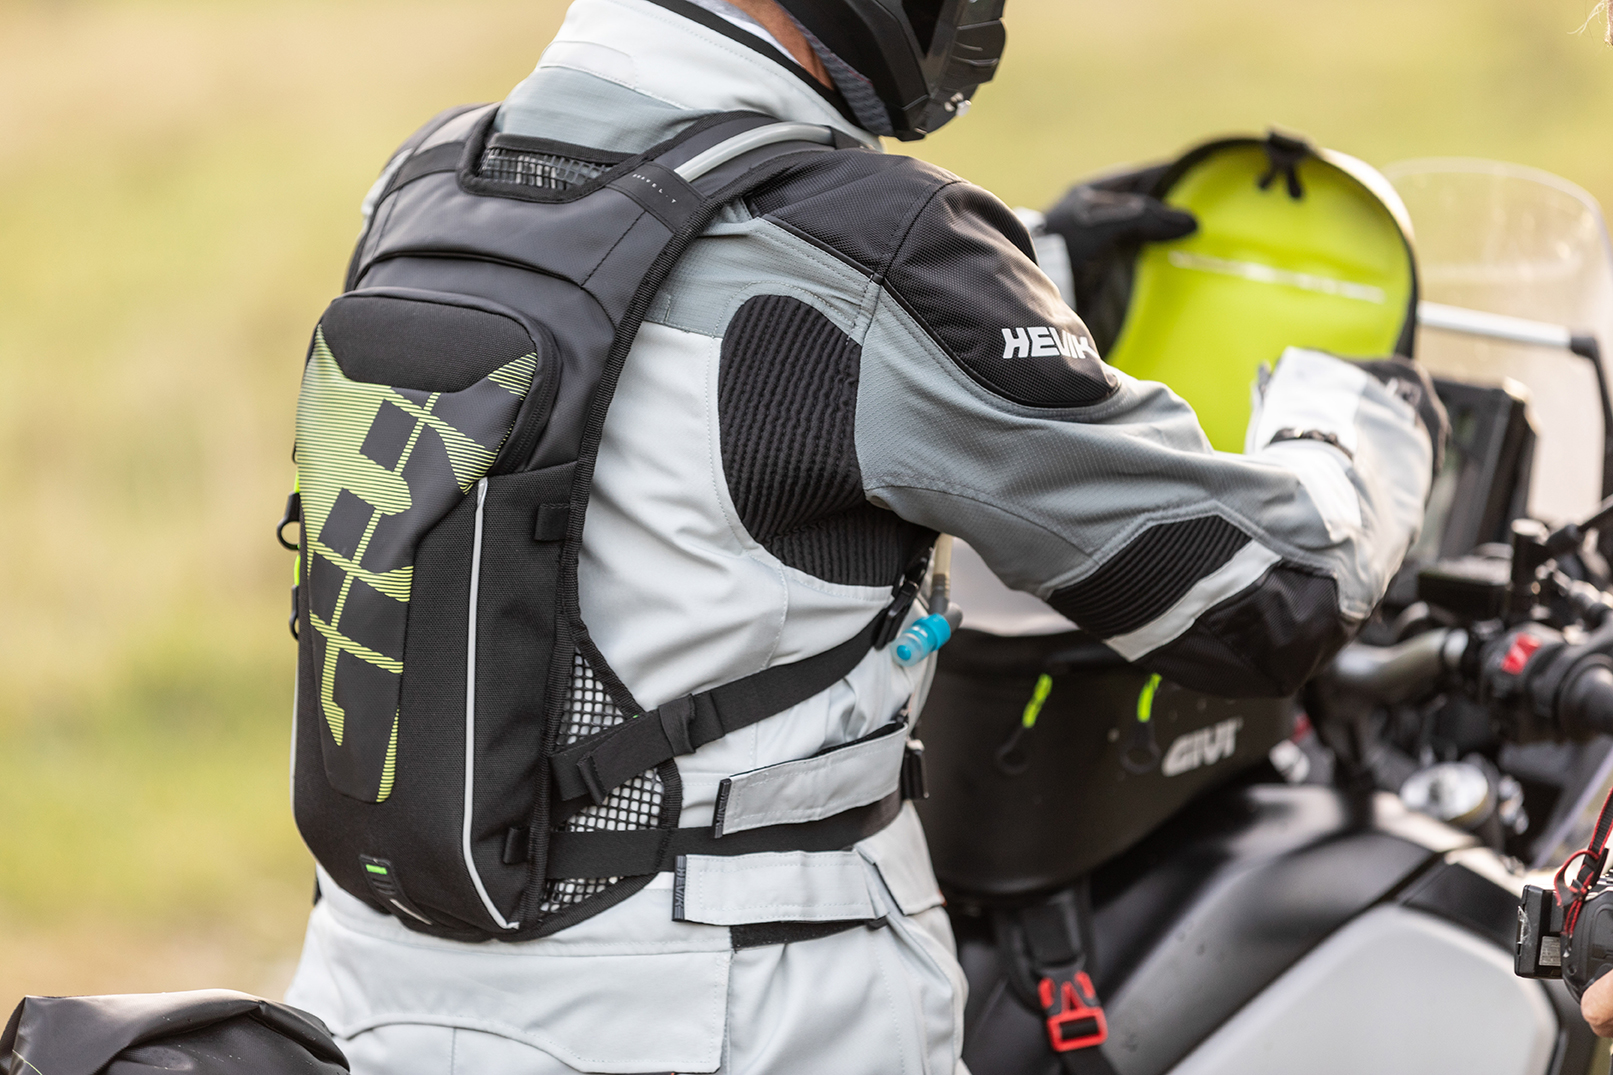 TO+ALL+OF+THE+OFF-ROAD+ENTHUSIASTS%2C+GIVI+PRESENTS+THE+NEW+GRT719%2C+A+RUCKSACK+WITH+AN+INTEGRATED+WATER+BAG%2C+AND+THE+HYDRAPAK+ELITE+T523+BAG%21